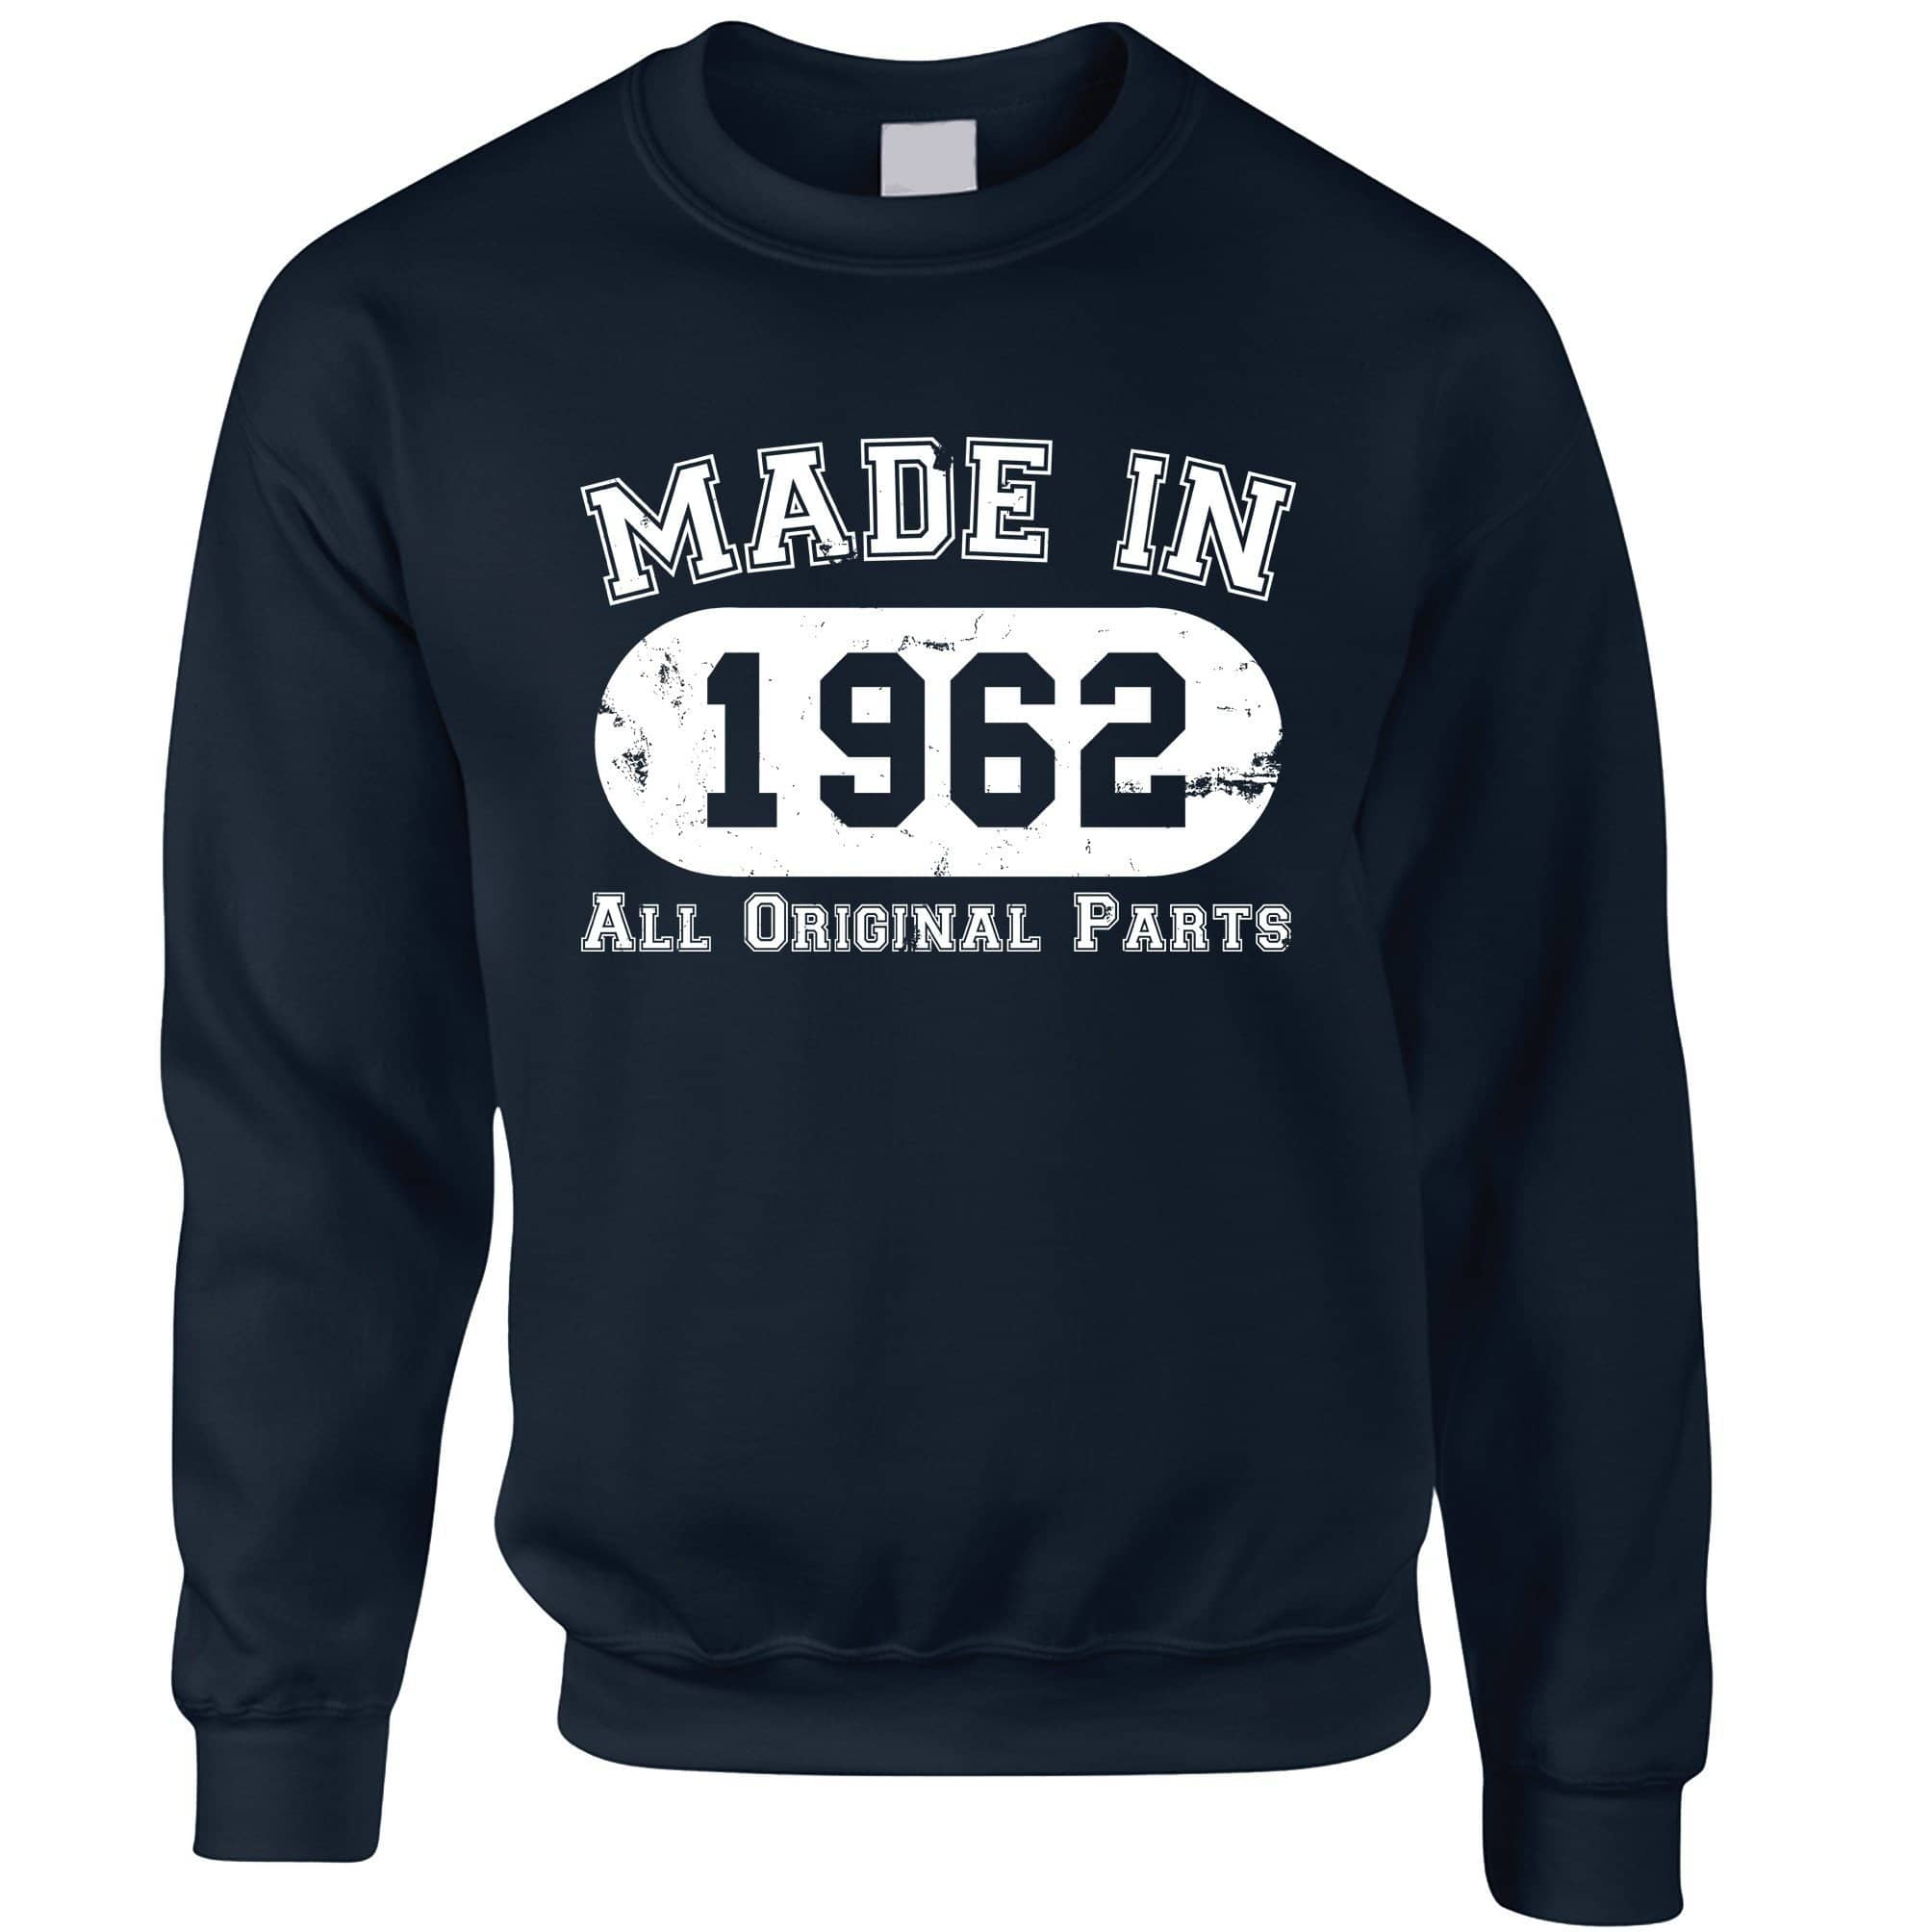 Made in 1962 All Original Parts Sweatshirt Jumper [Distressed]